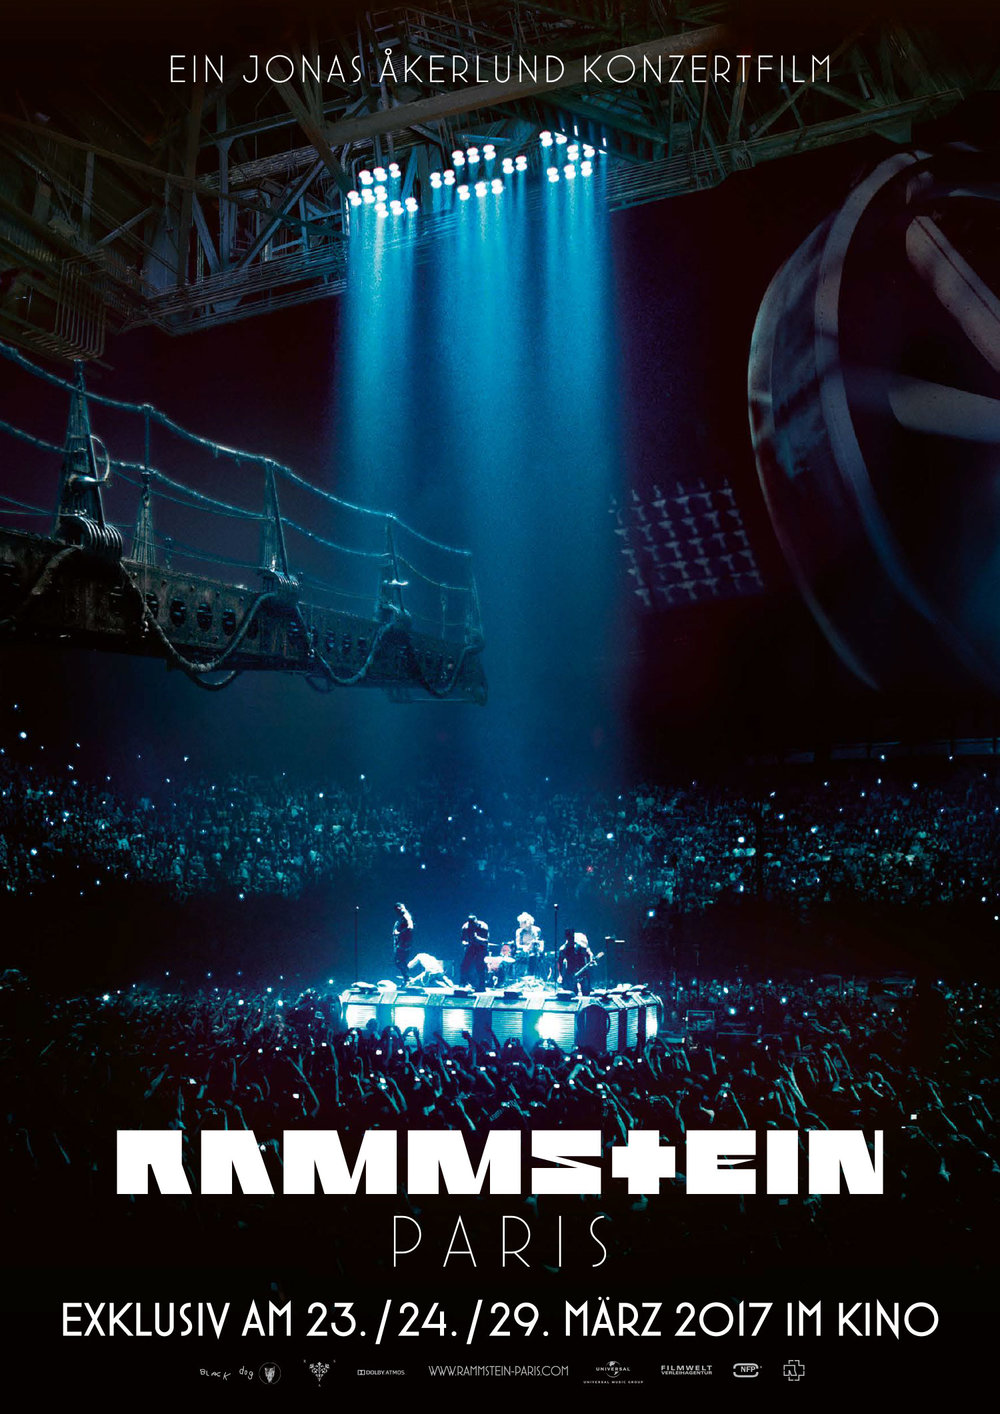 "NFP*<a href=""/rammstein-paris"">→</a><strong>Adaption</strong>"